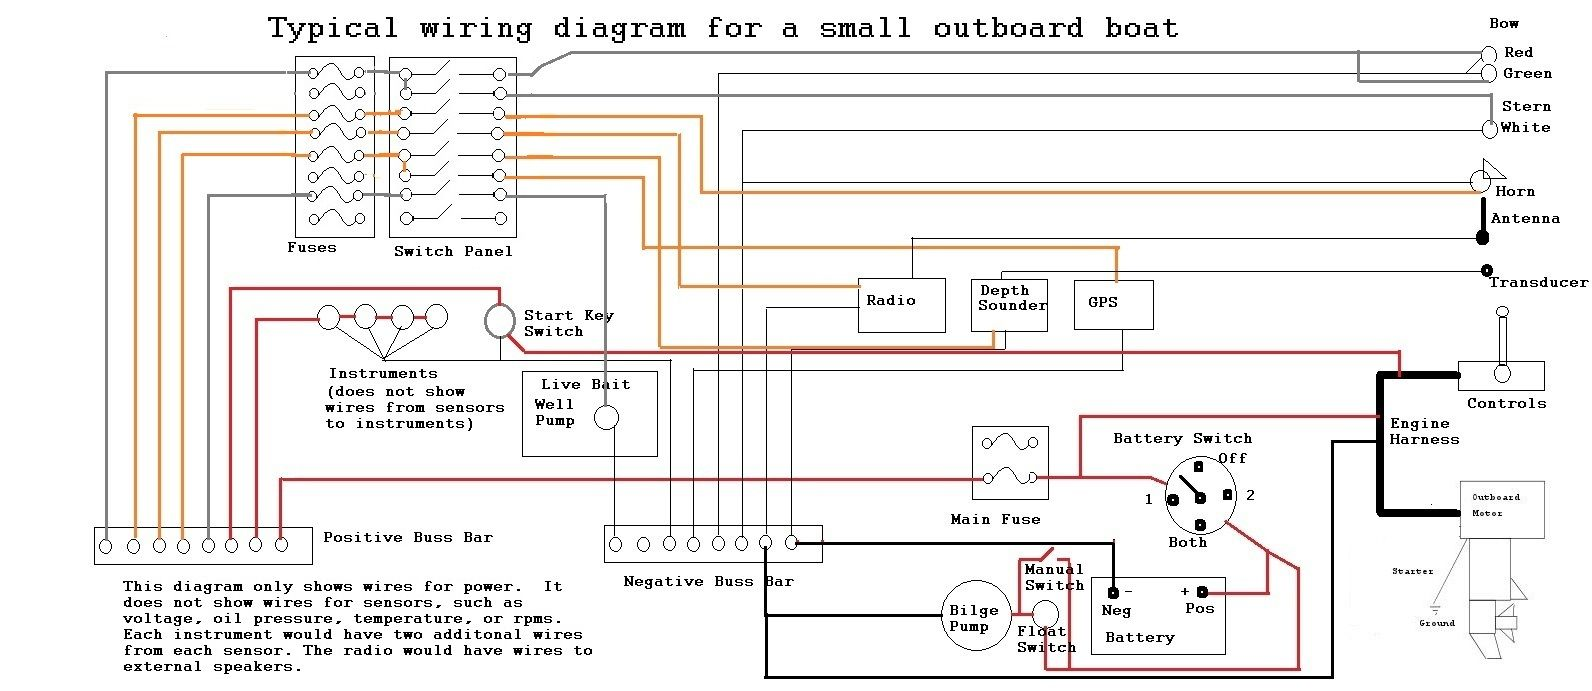 hight resolution of wiring diagram small outboard